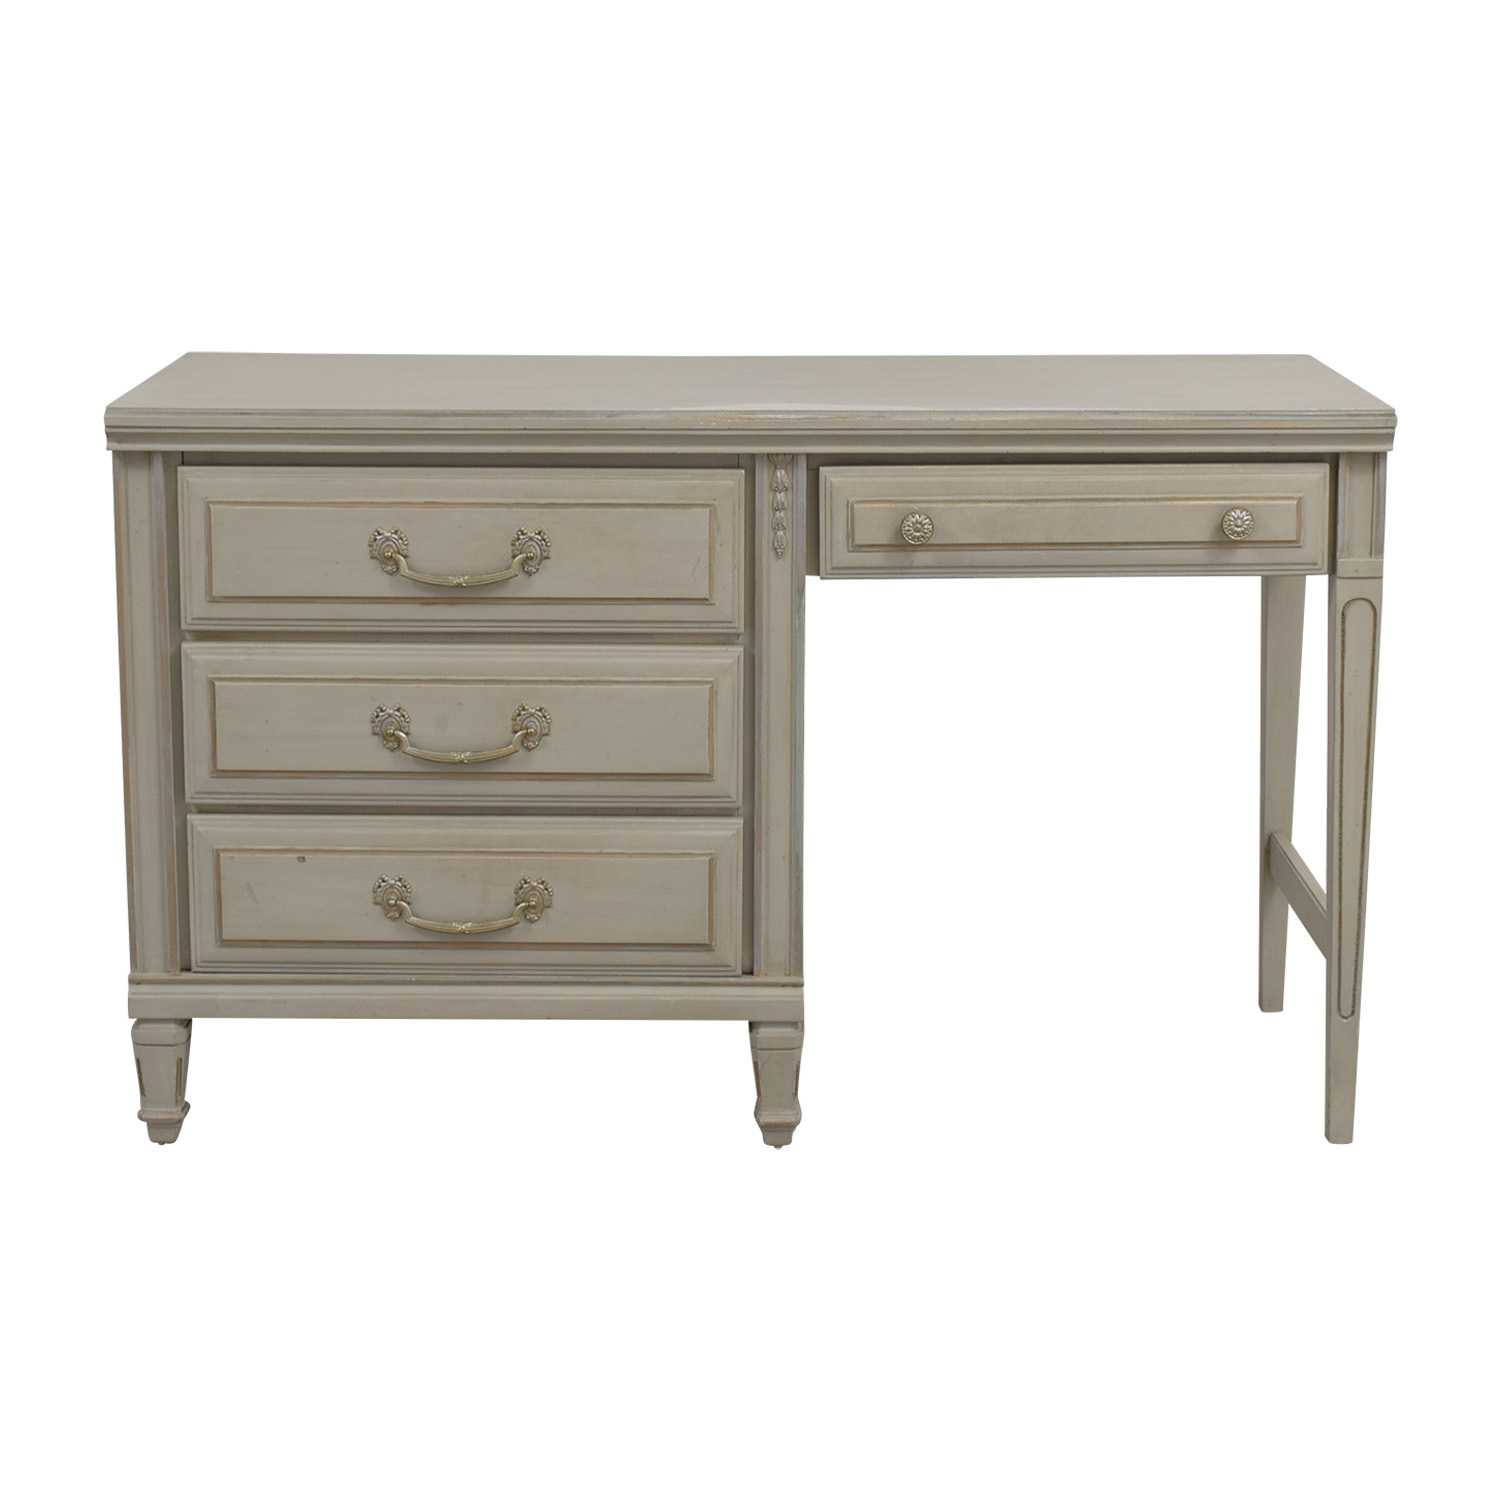 Vintage Painted Grey Four-Drawer Desk for sale